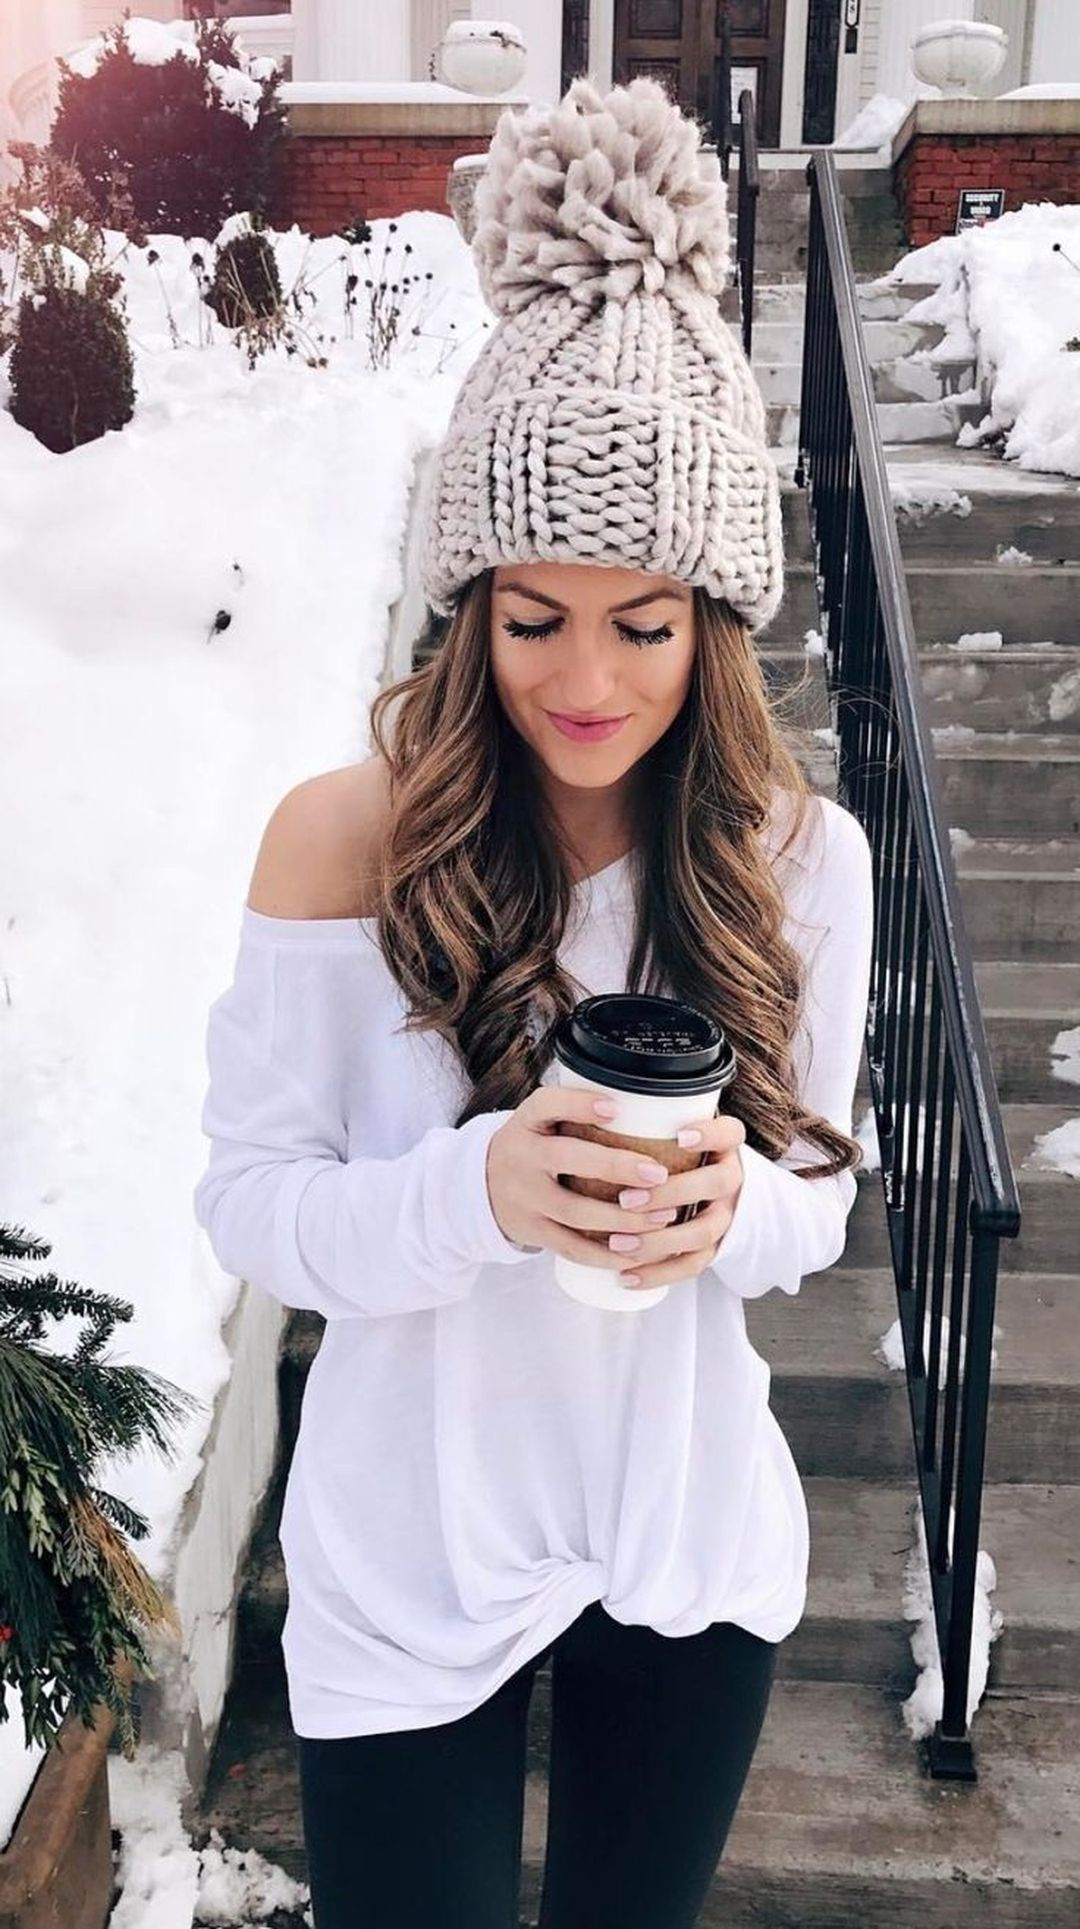 b3f2efc1c60 20 Stylish and Cozy Christmas Outfits to Try This Year